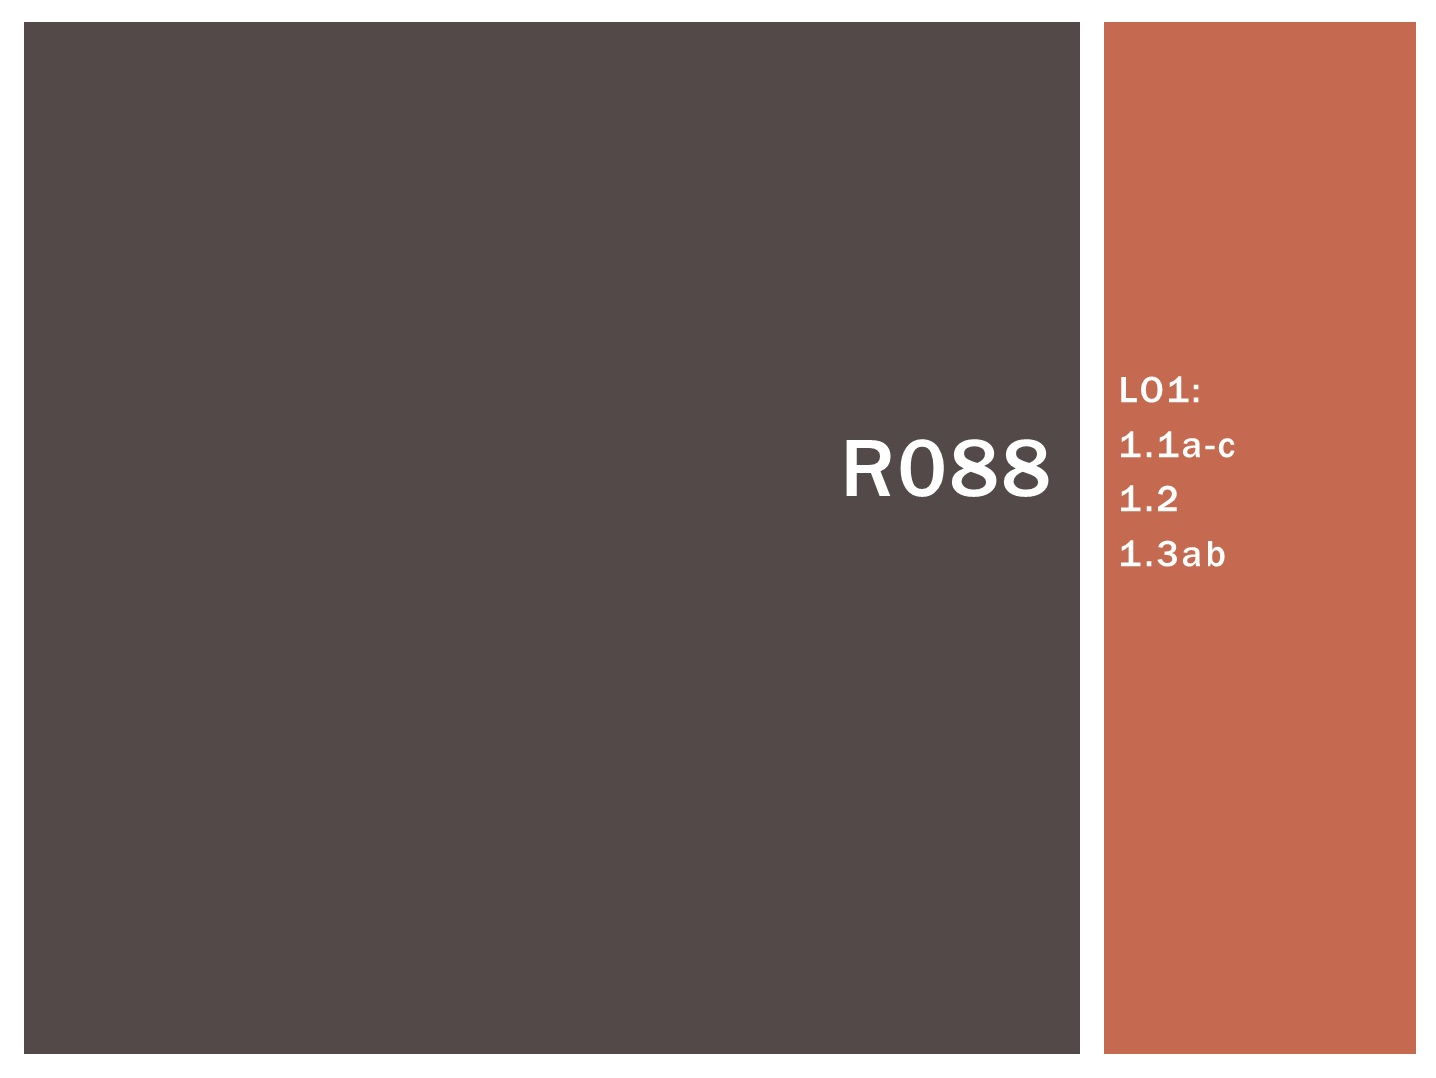 R088 - Creating a Digital Sound Sequence, [LO1], CAMNATS, Creative iMedia Lvls 1/2